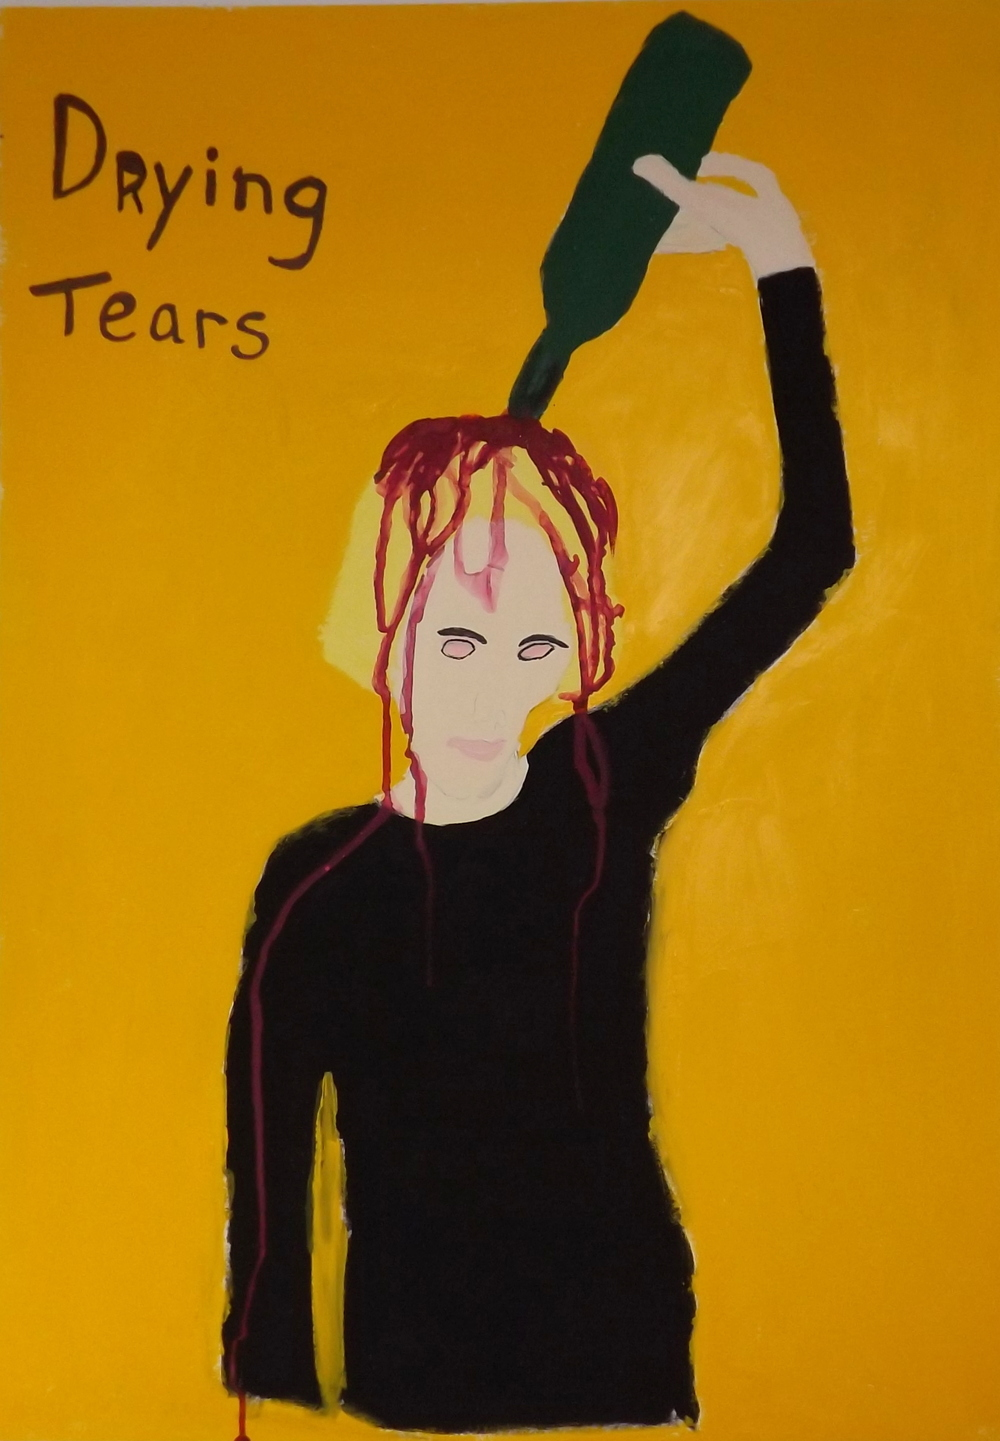 Drying Tears     Gouache on cardboard (2014)